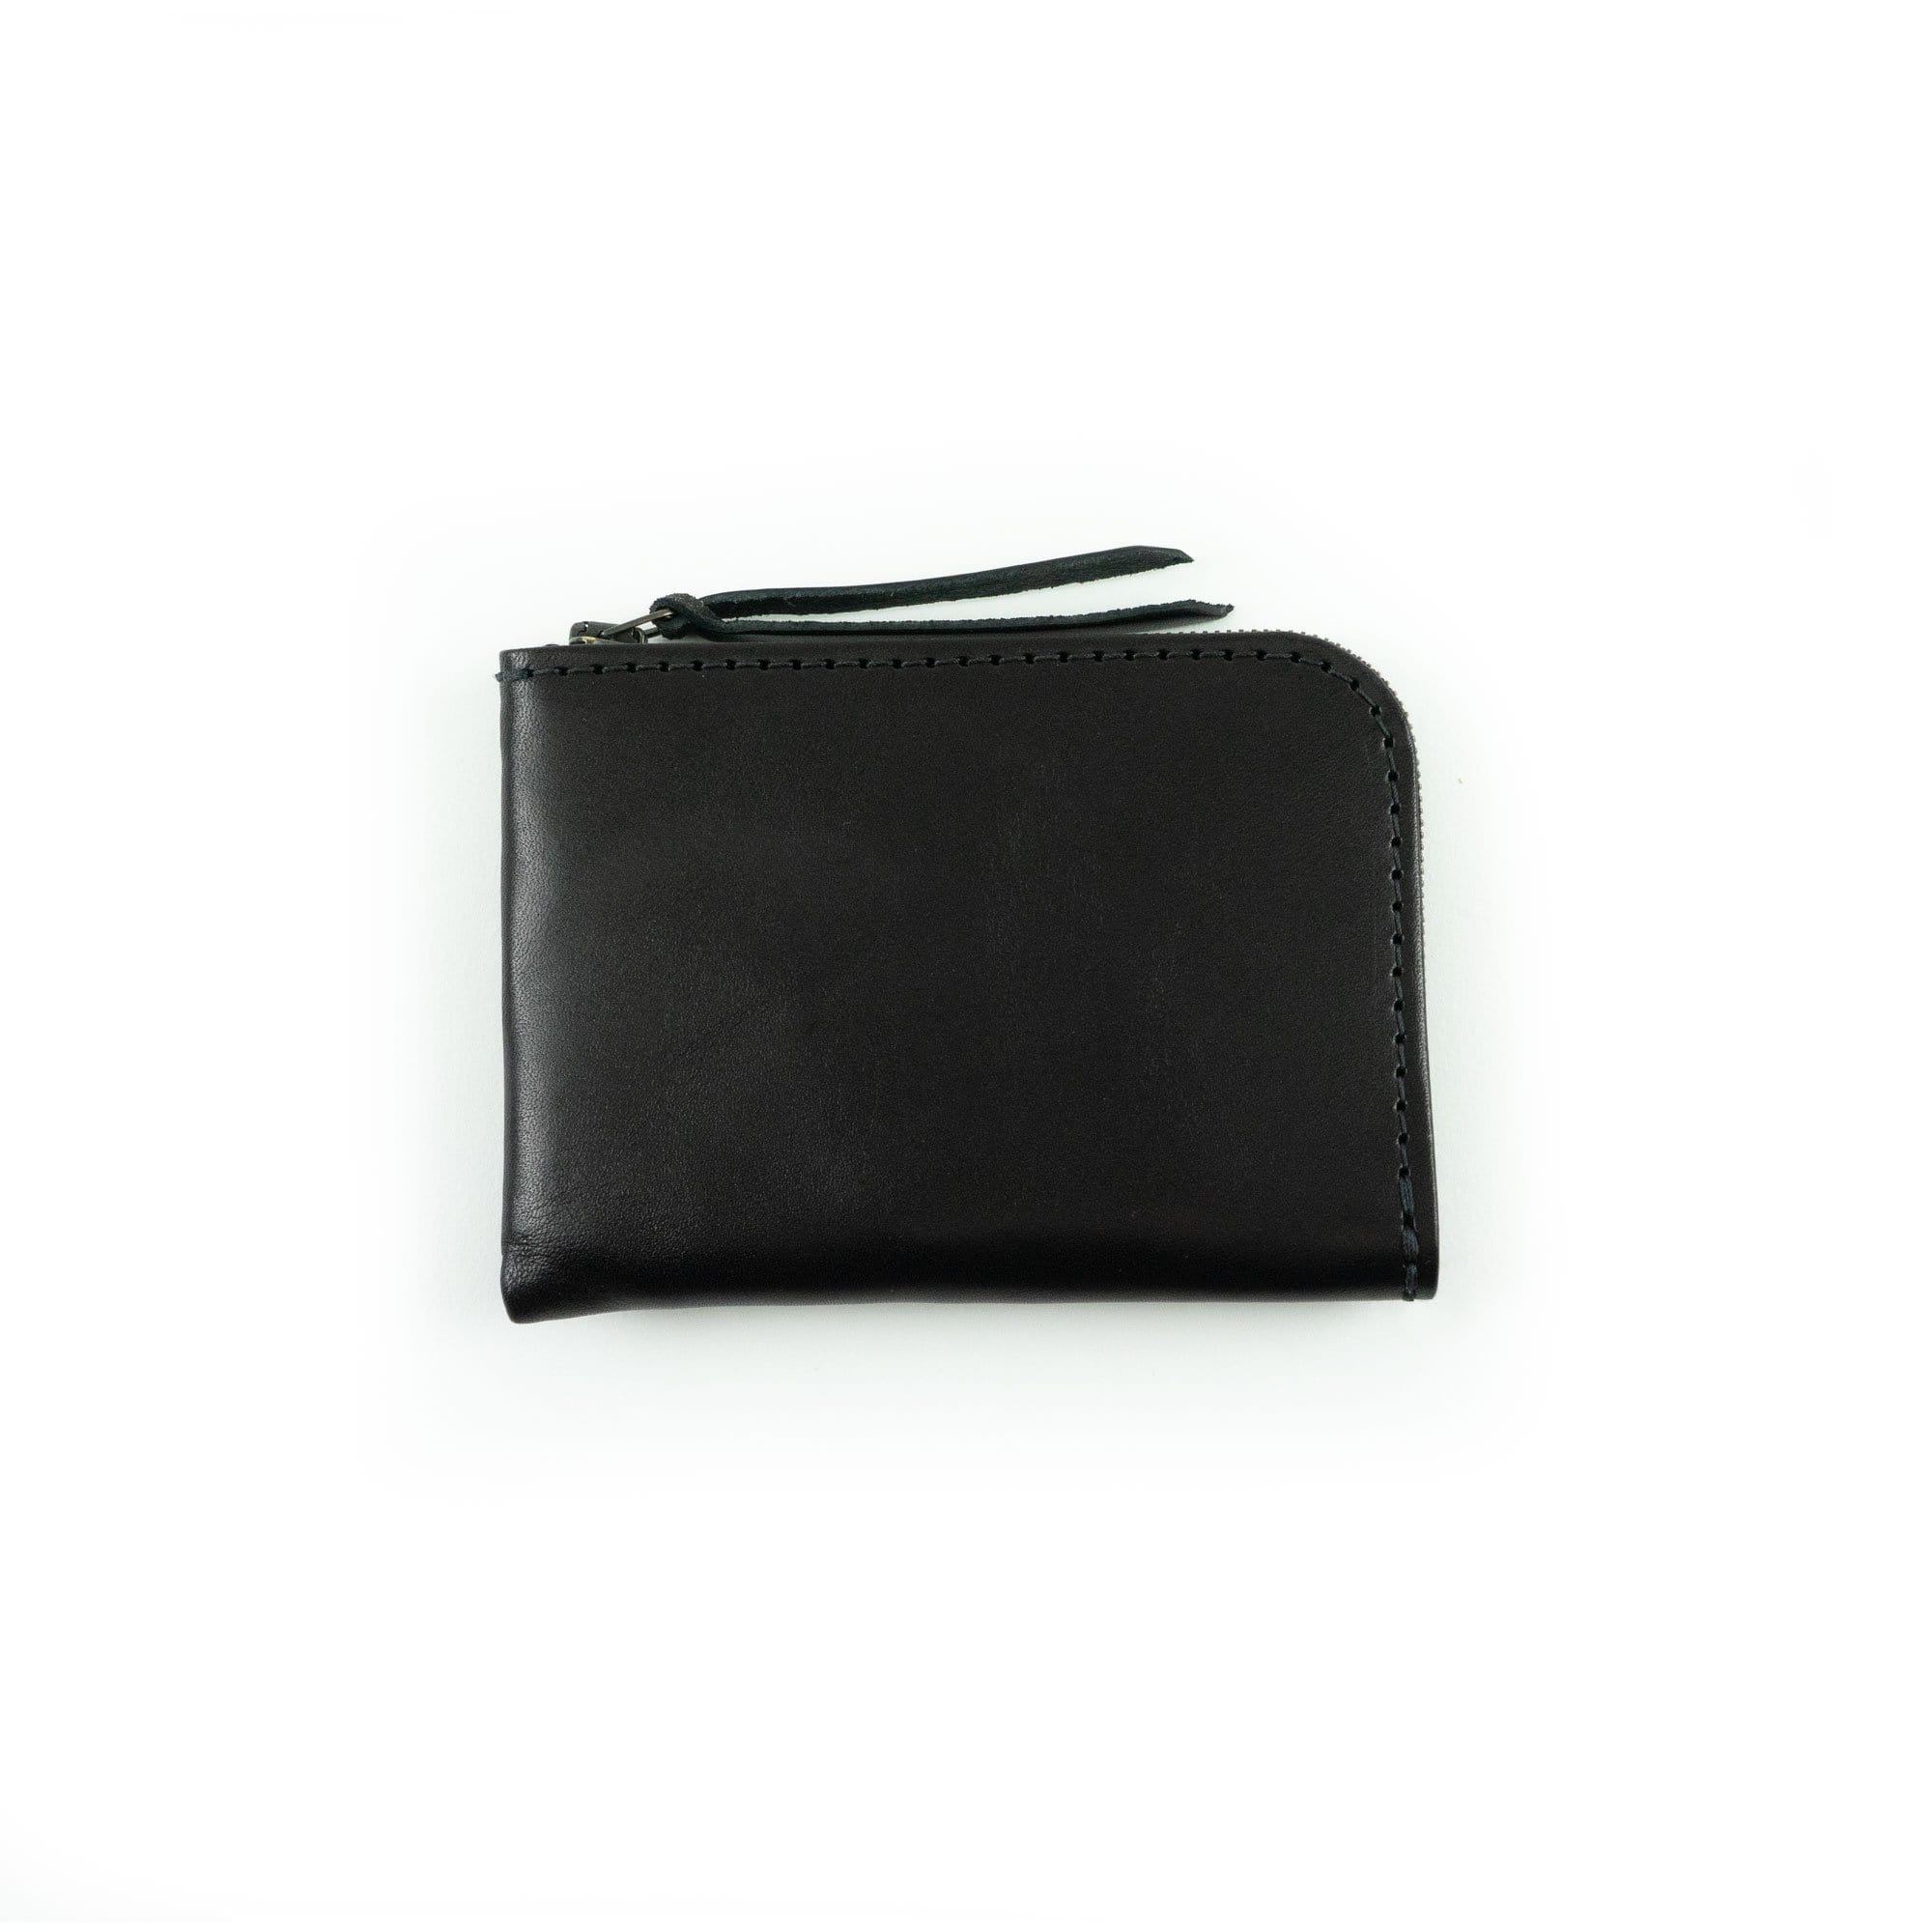 Tanner Goods Accessories Universal Zip Wallet